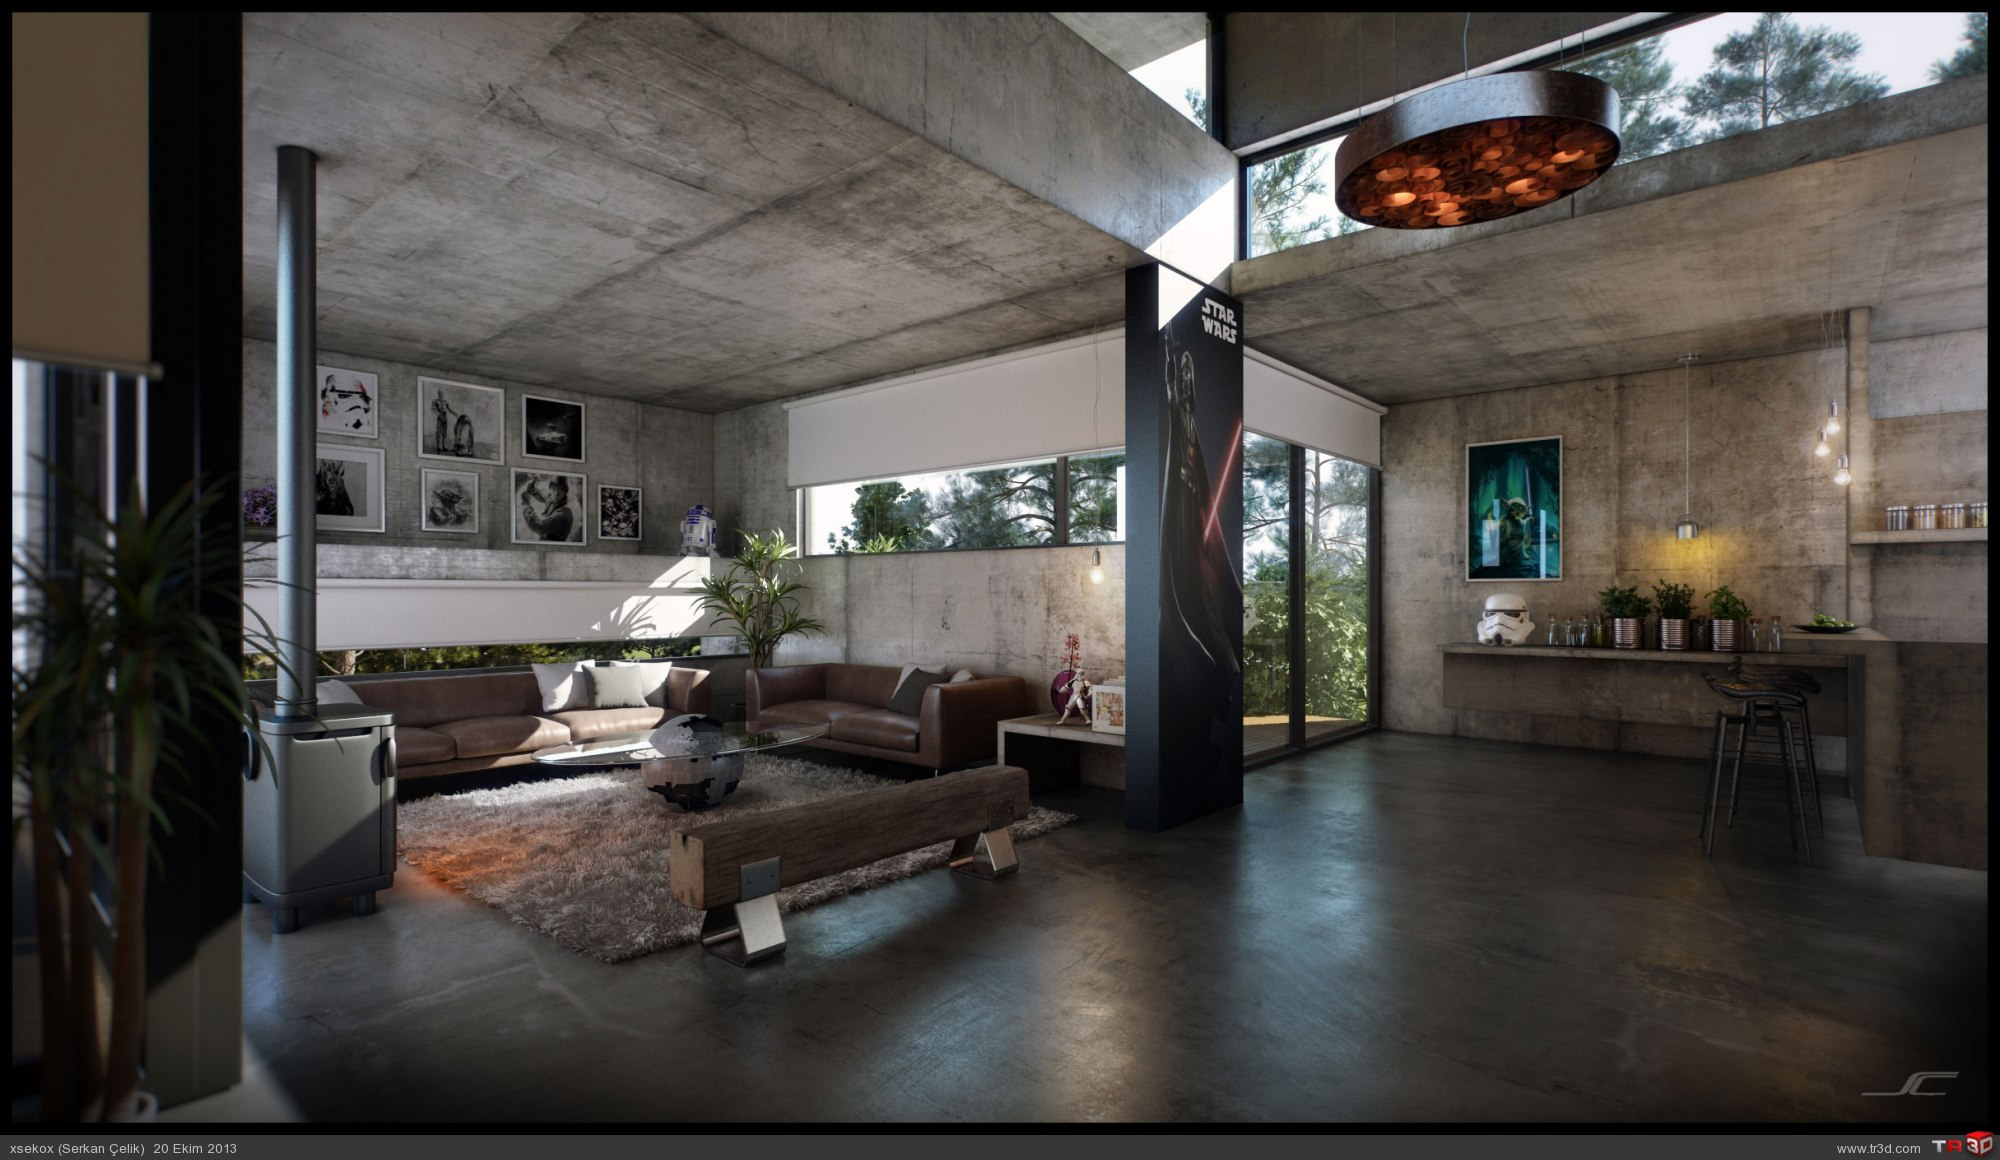 Jd house mimari projeler for Concrete home design ideas